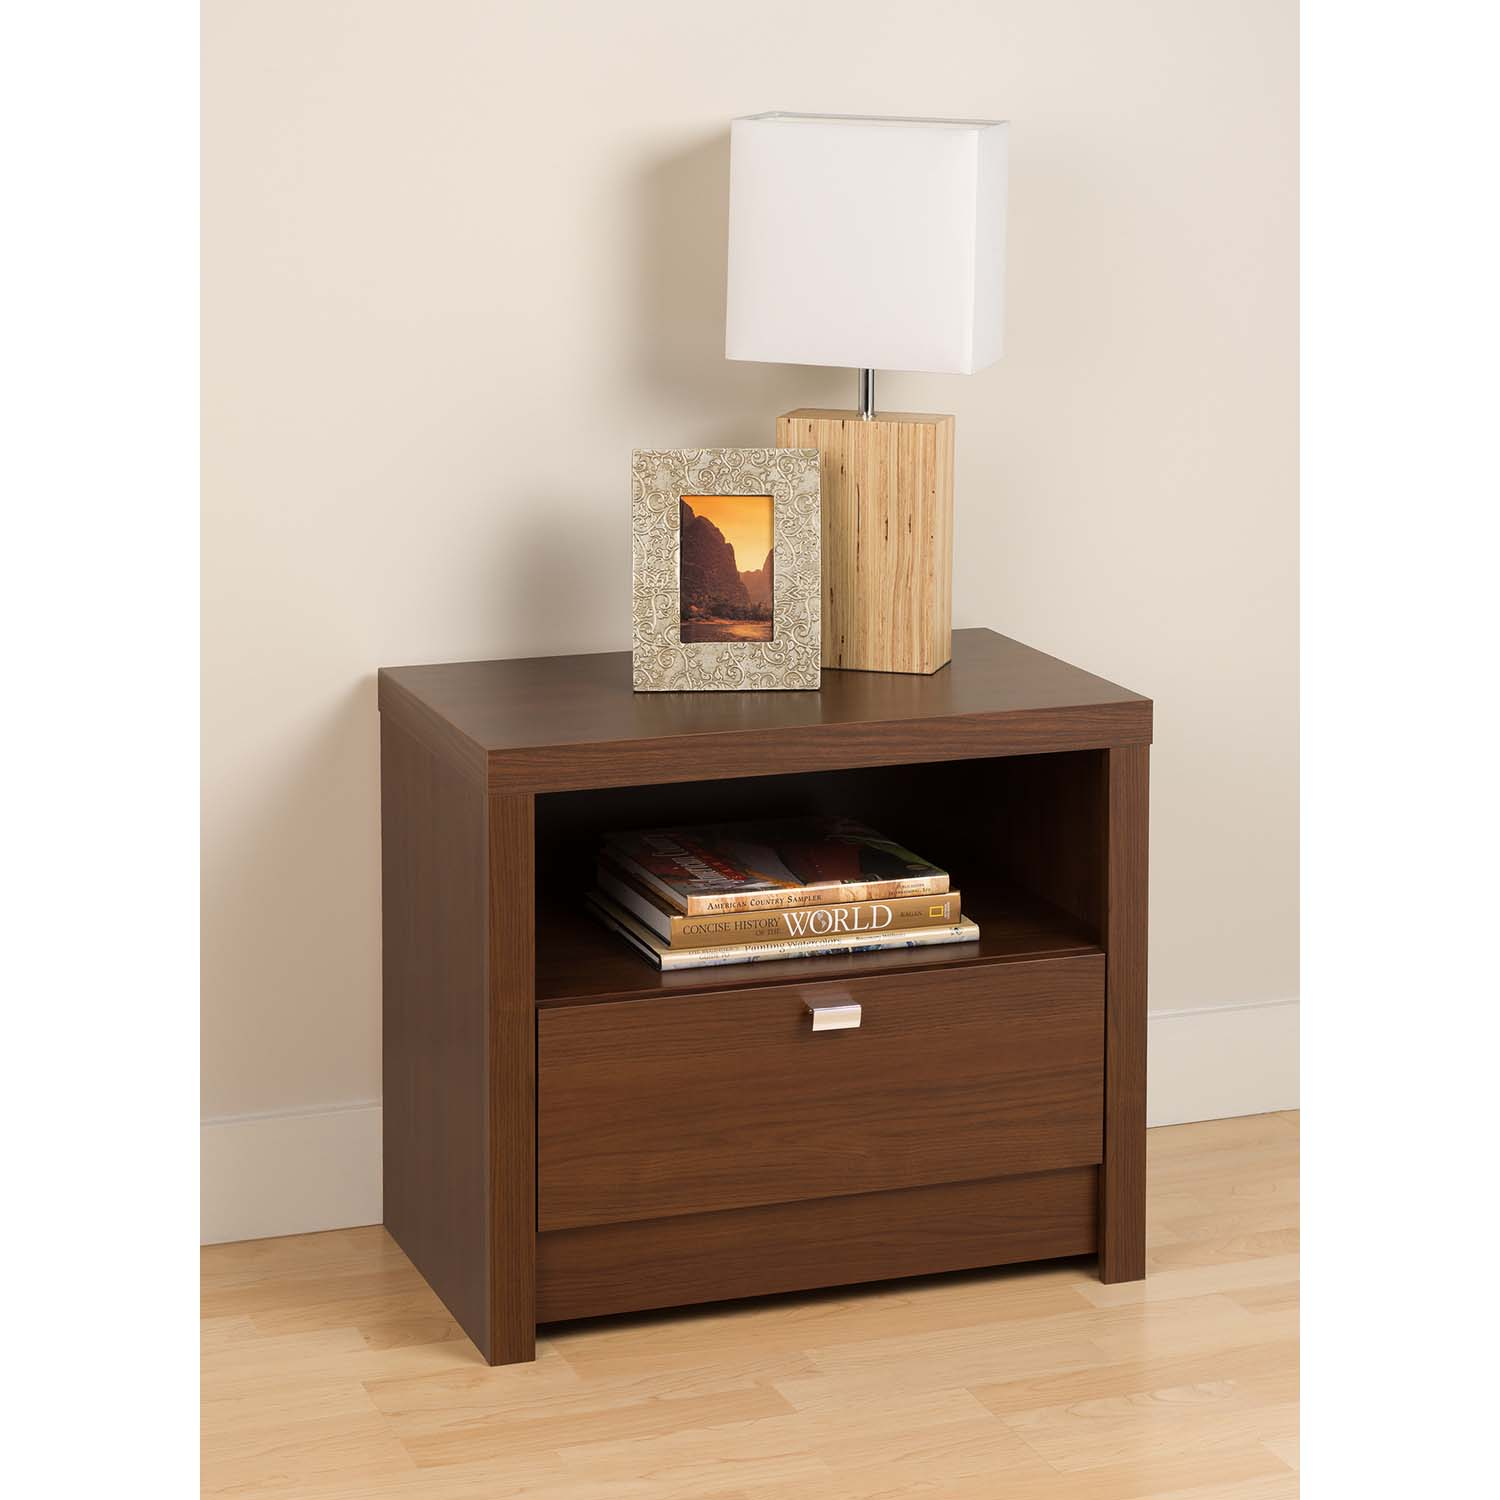 Series 9 Designer 1-Drawer Nightstand - Warm Cherry - PRE-LDNR-0510-1